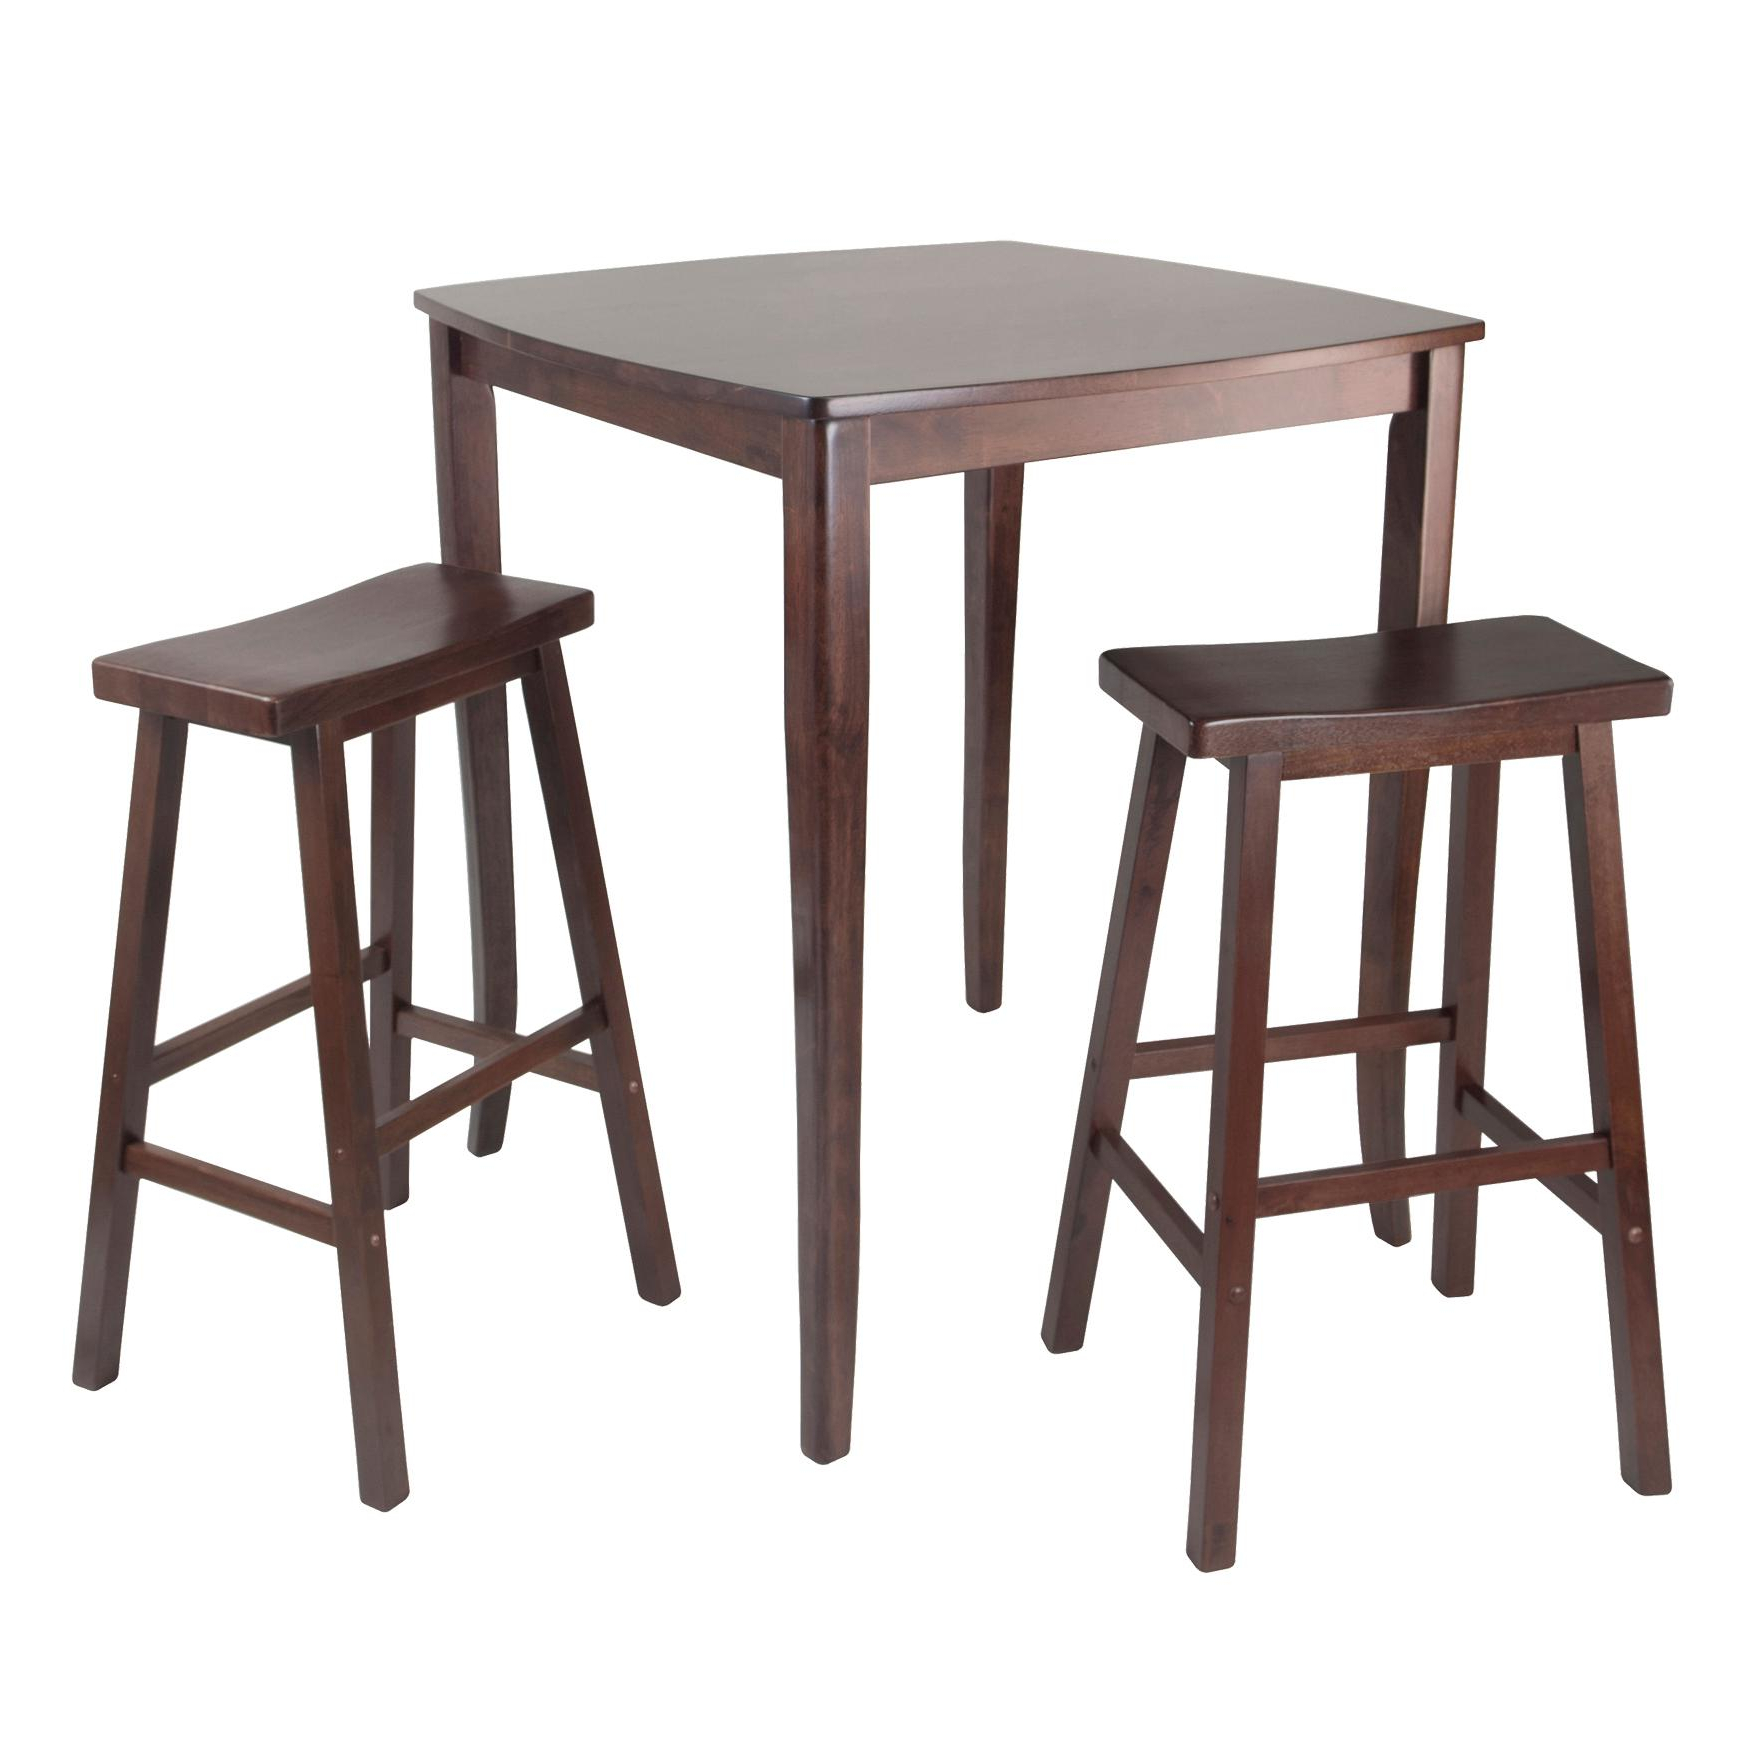 Well Liked Winsome 3 Piece Counter Height Dining Sets Pertaining To Amazon: Winsome Inglewood High/pub Dining Table With Saddle (View 3 of 25)